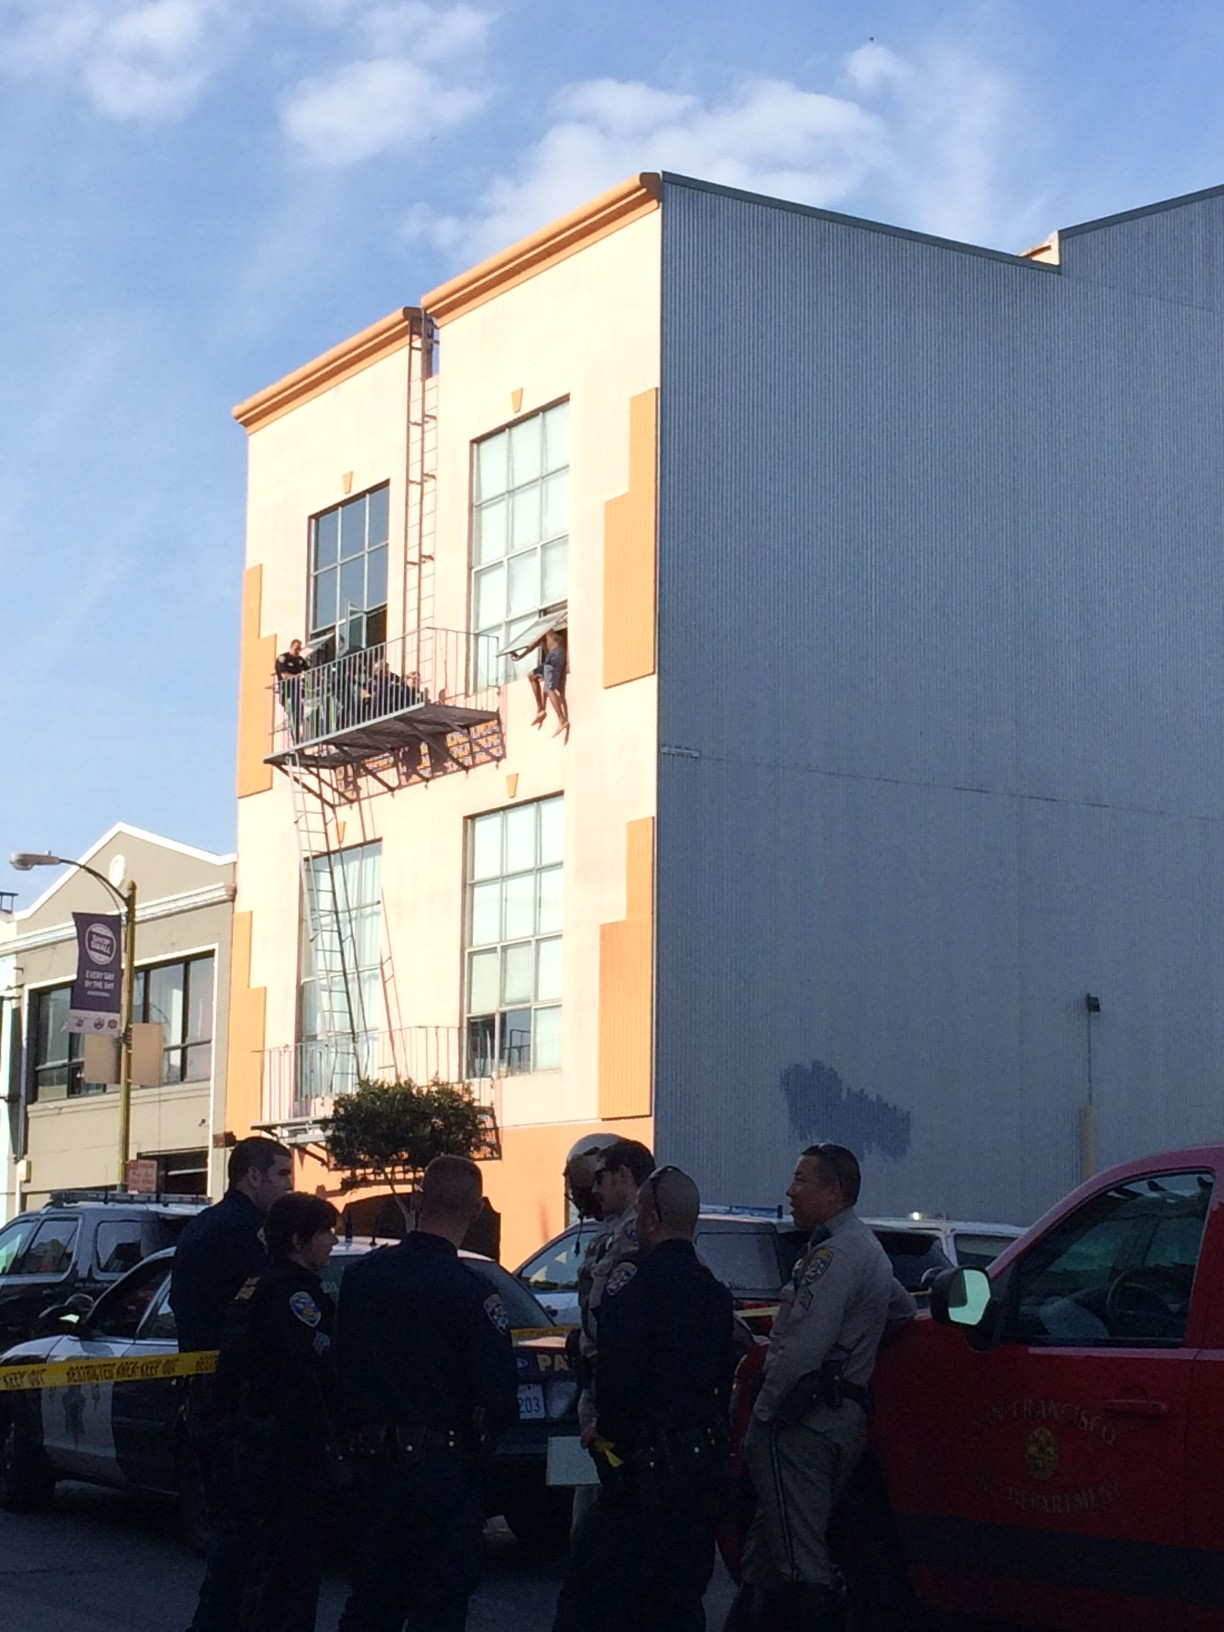 Man Threatening to Jump from Second-Story Window Taken into Custody